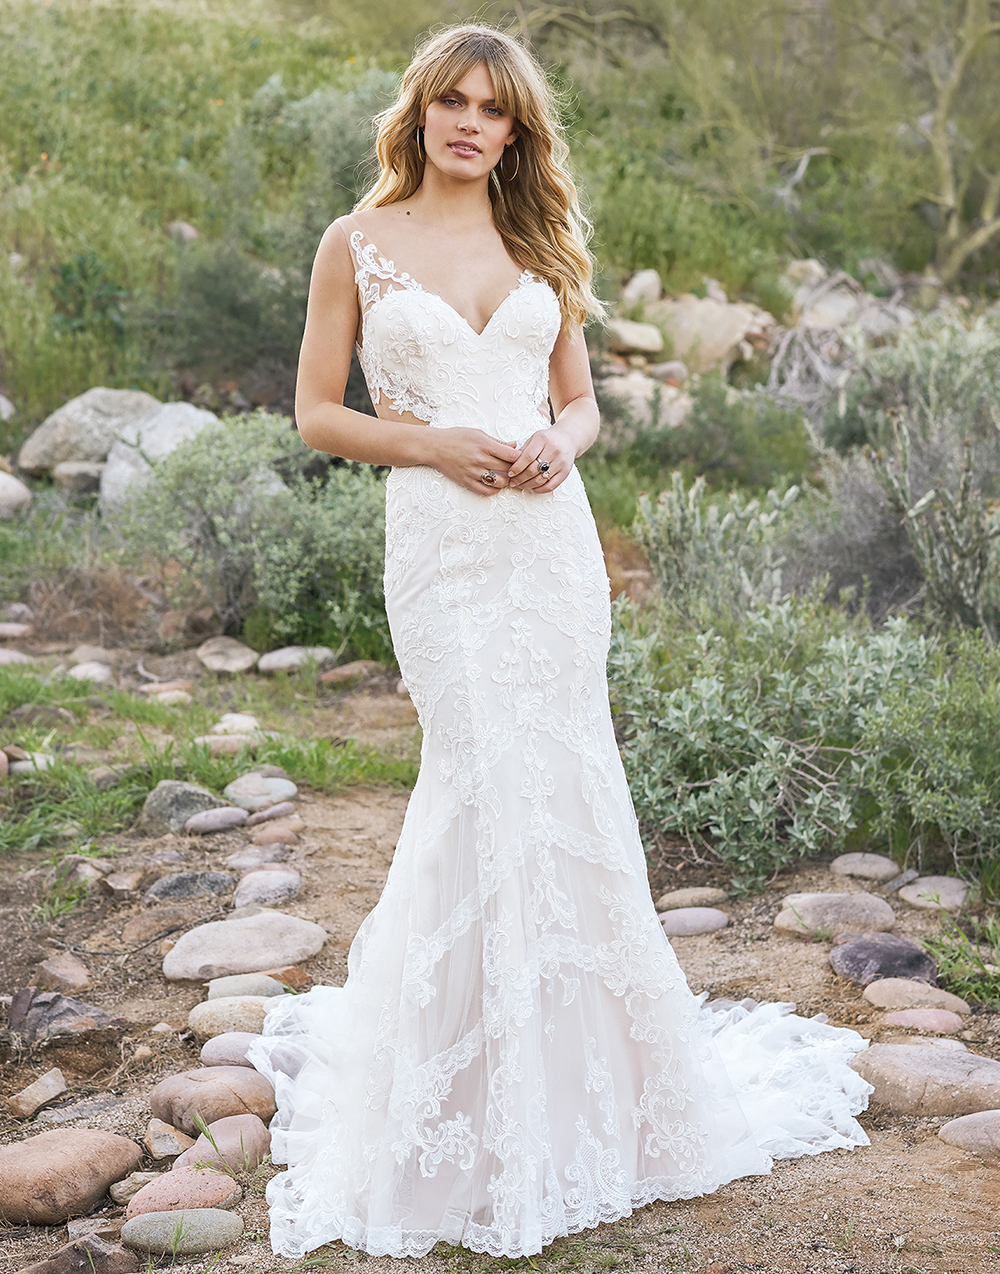 Conveniently located in beautiful downtown Redlands, CA.  Why drive to L.A. or Orange County?  We have designer bridal gowns and dresses right here in the Inland Empire at The Proposal, Bridal Boutique!  -